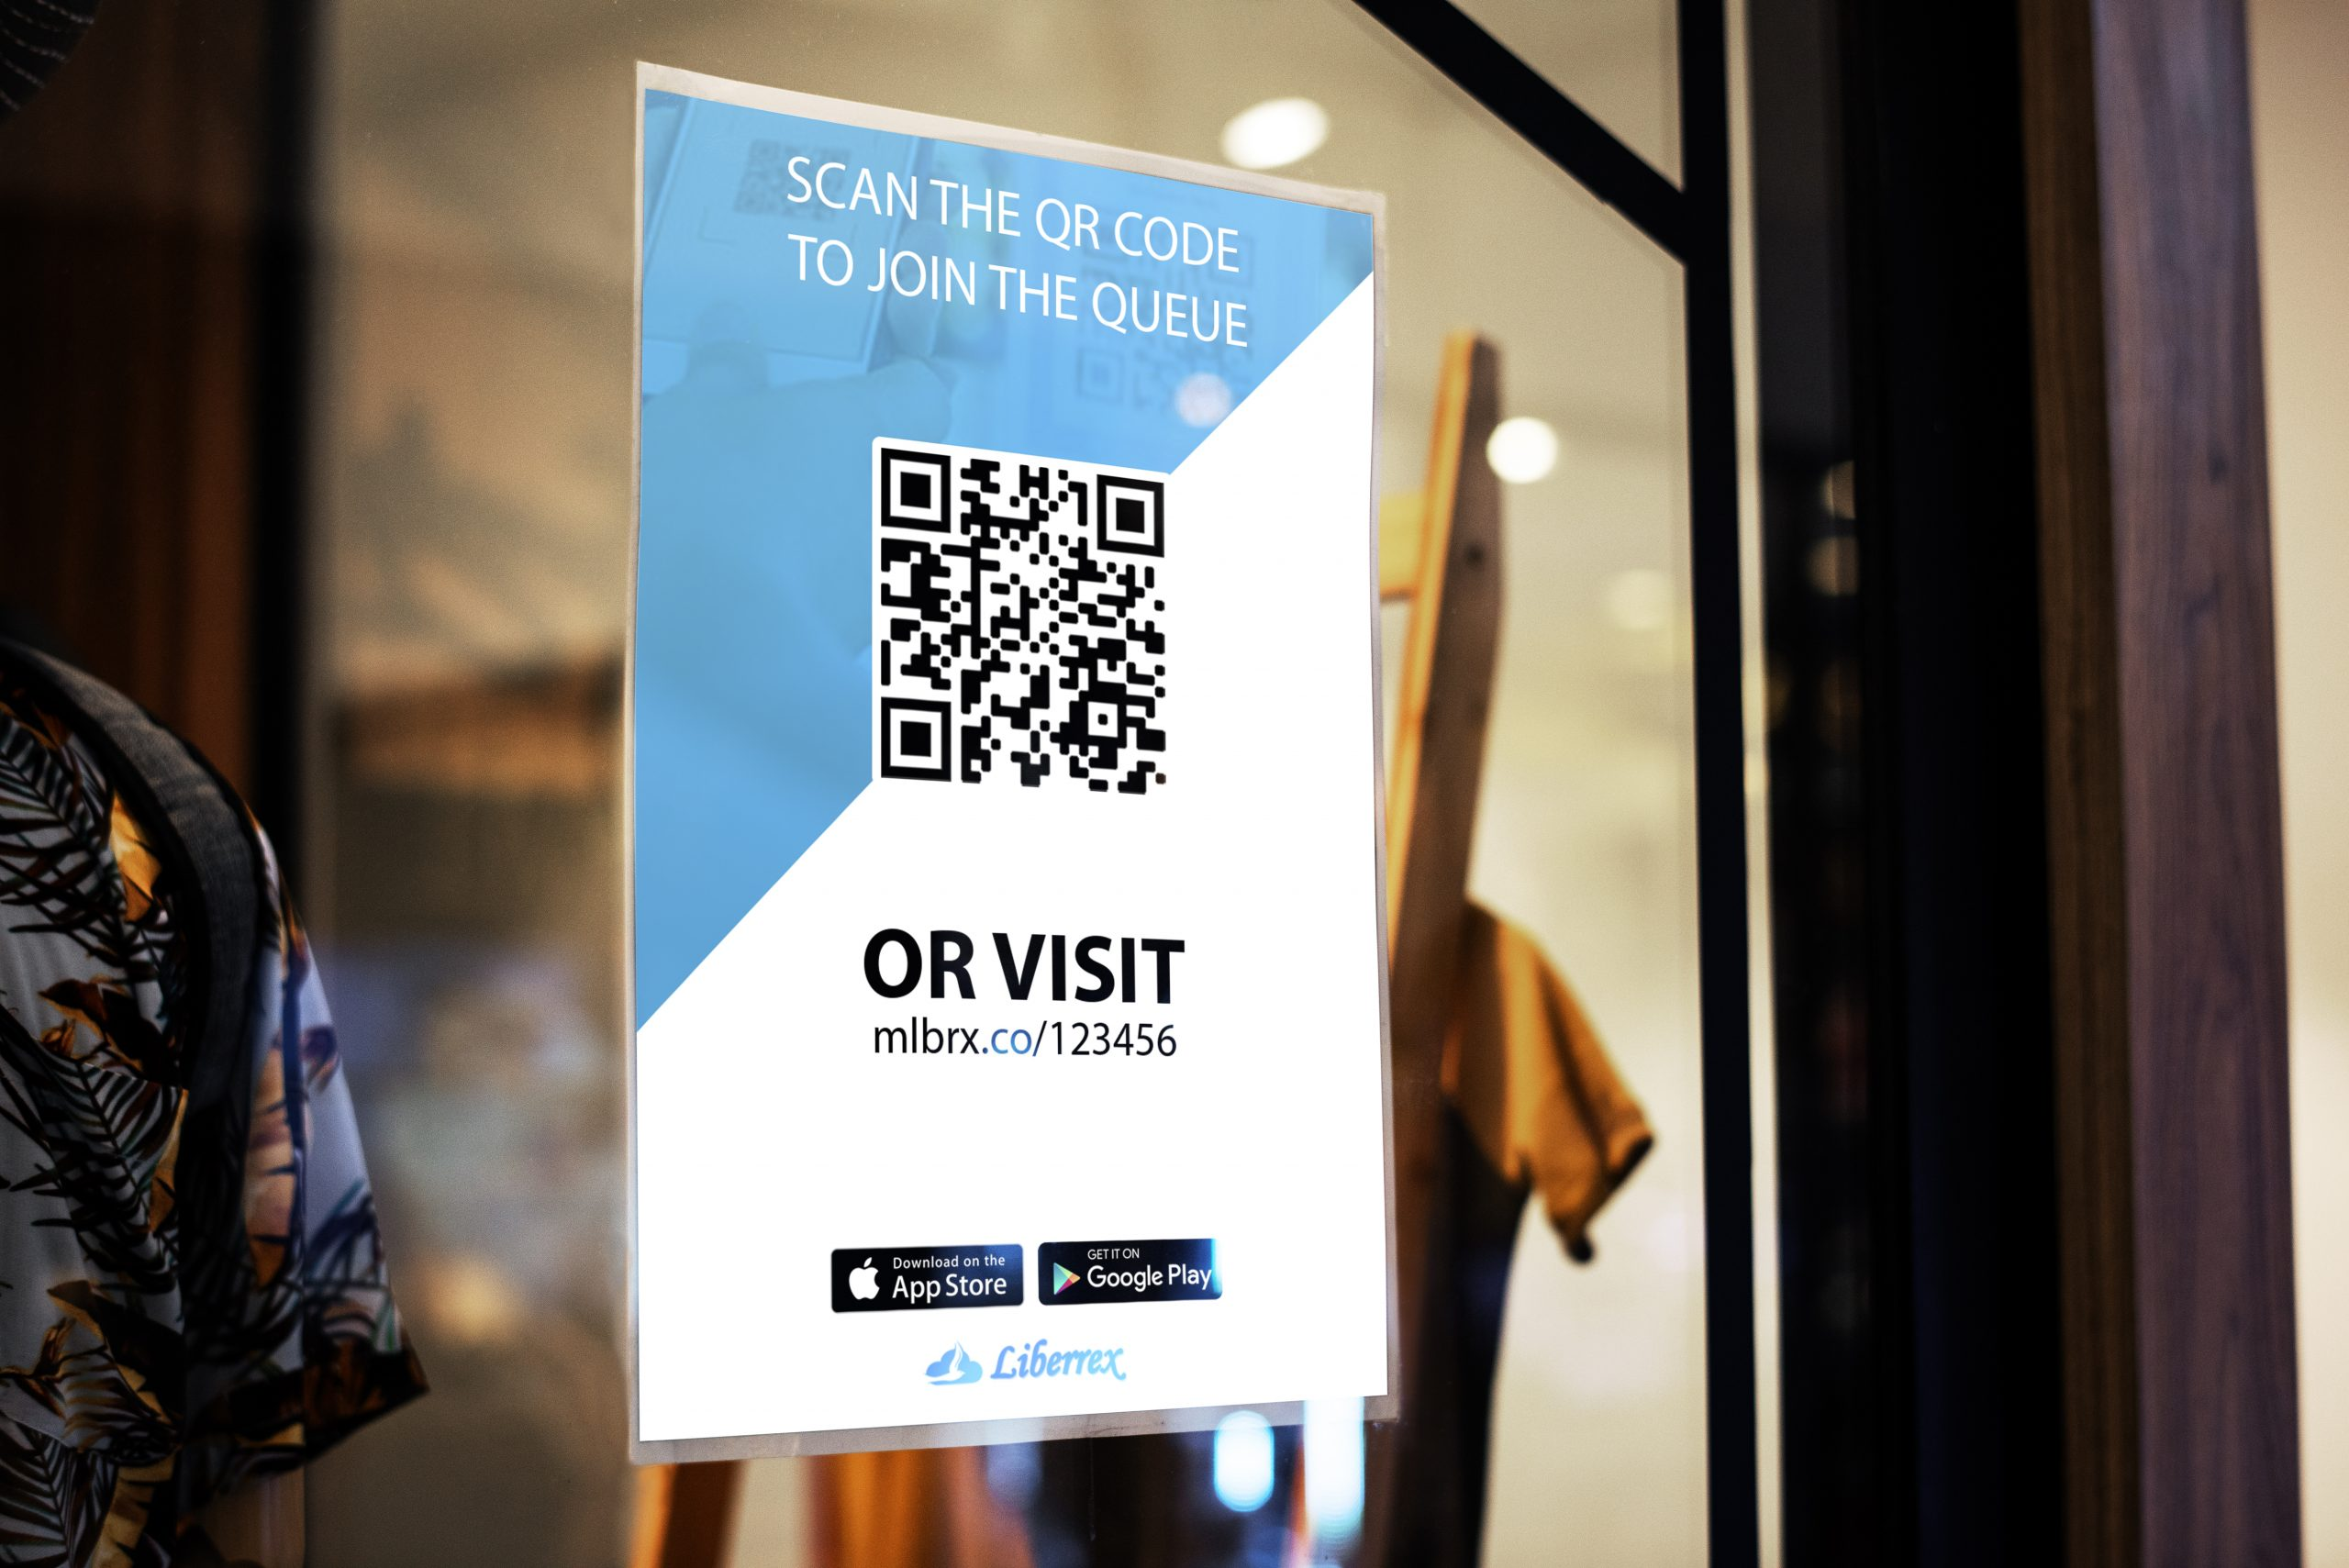 Sound & Safe – Touchless Check-In experience with QR Code scanning